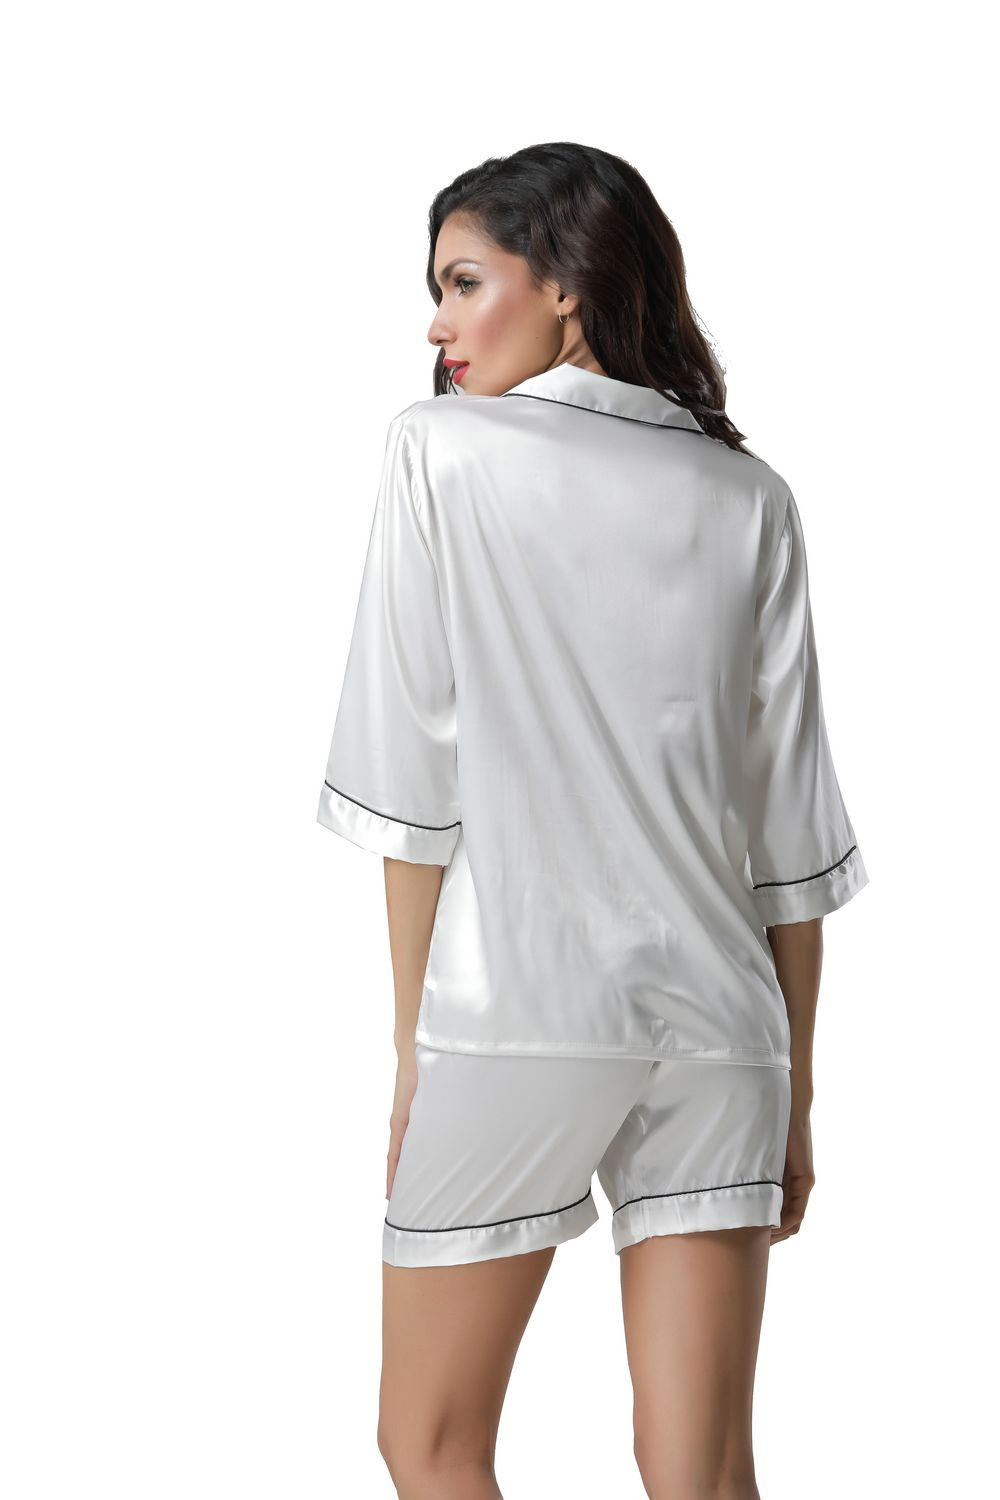 F5272-2 With padding sexy v neck women summer leisure wear pajamas